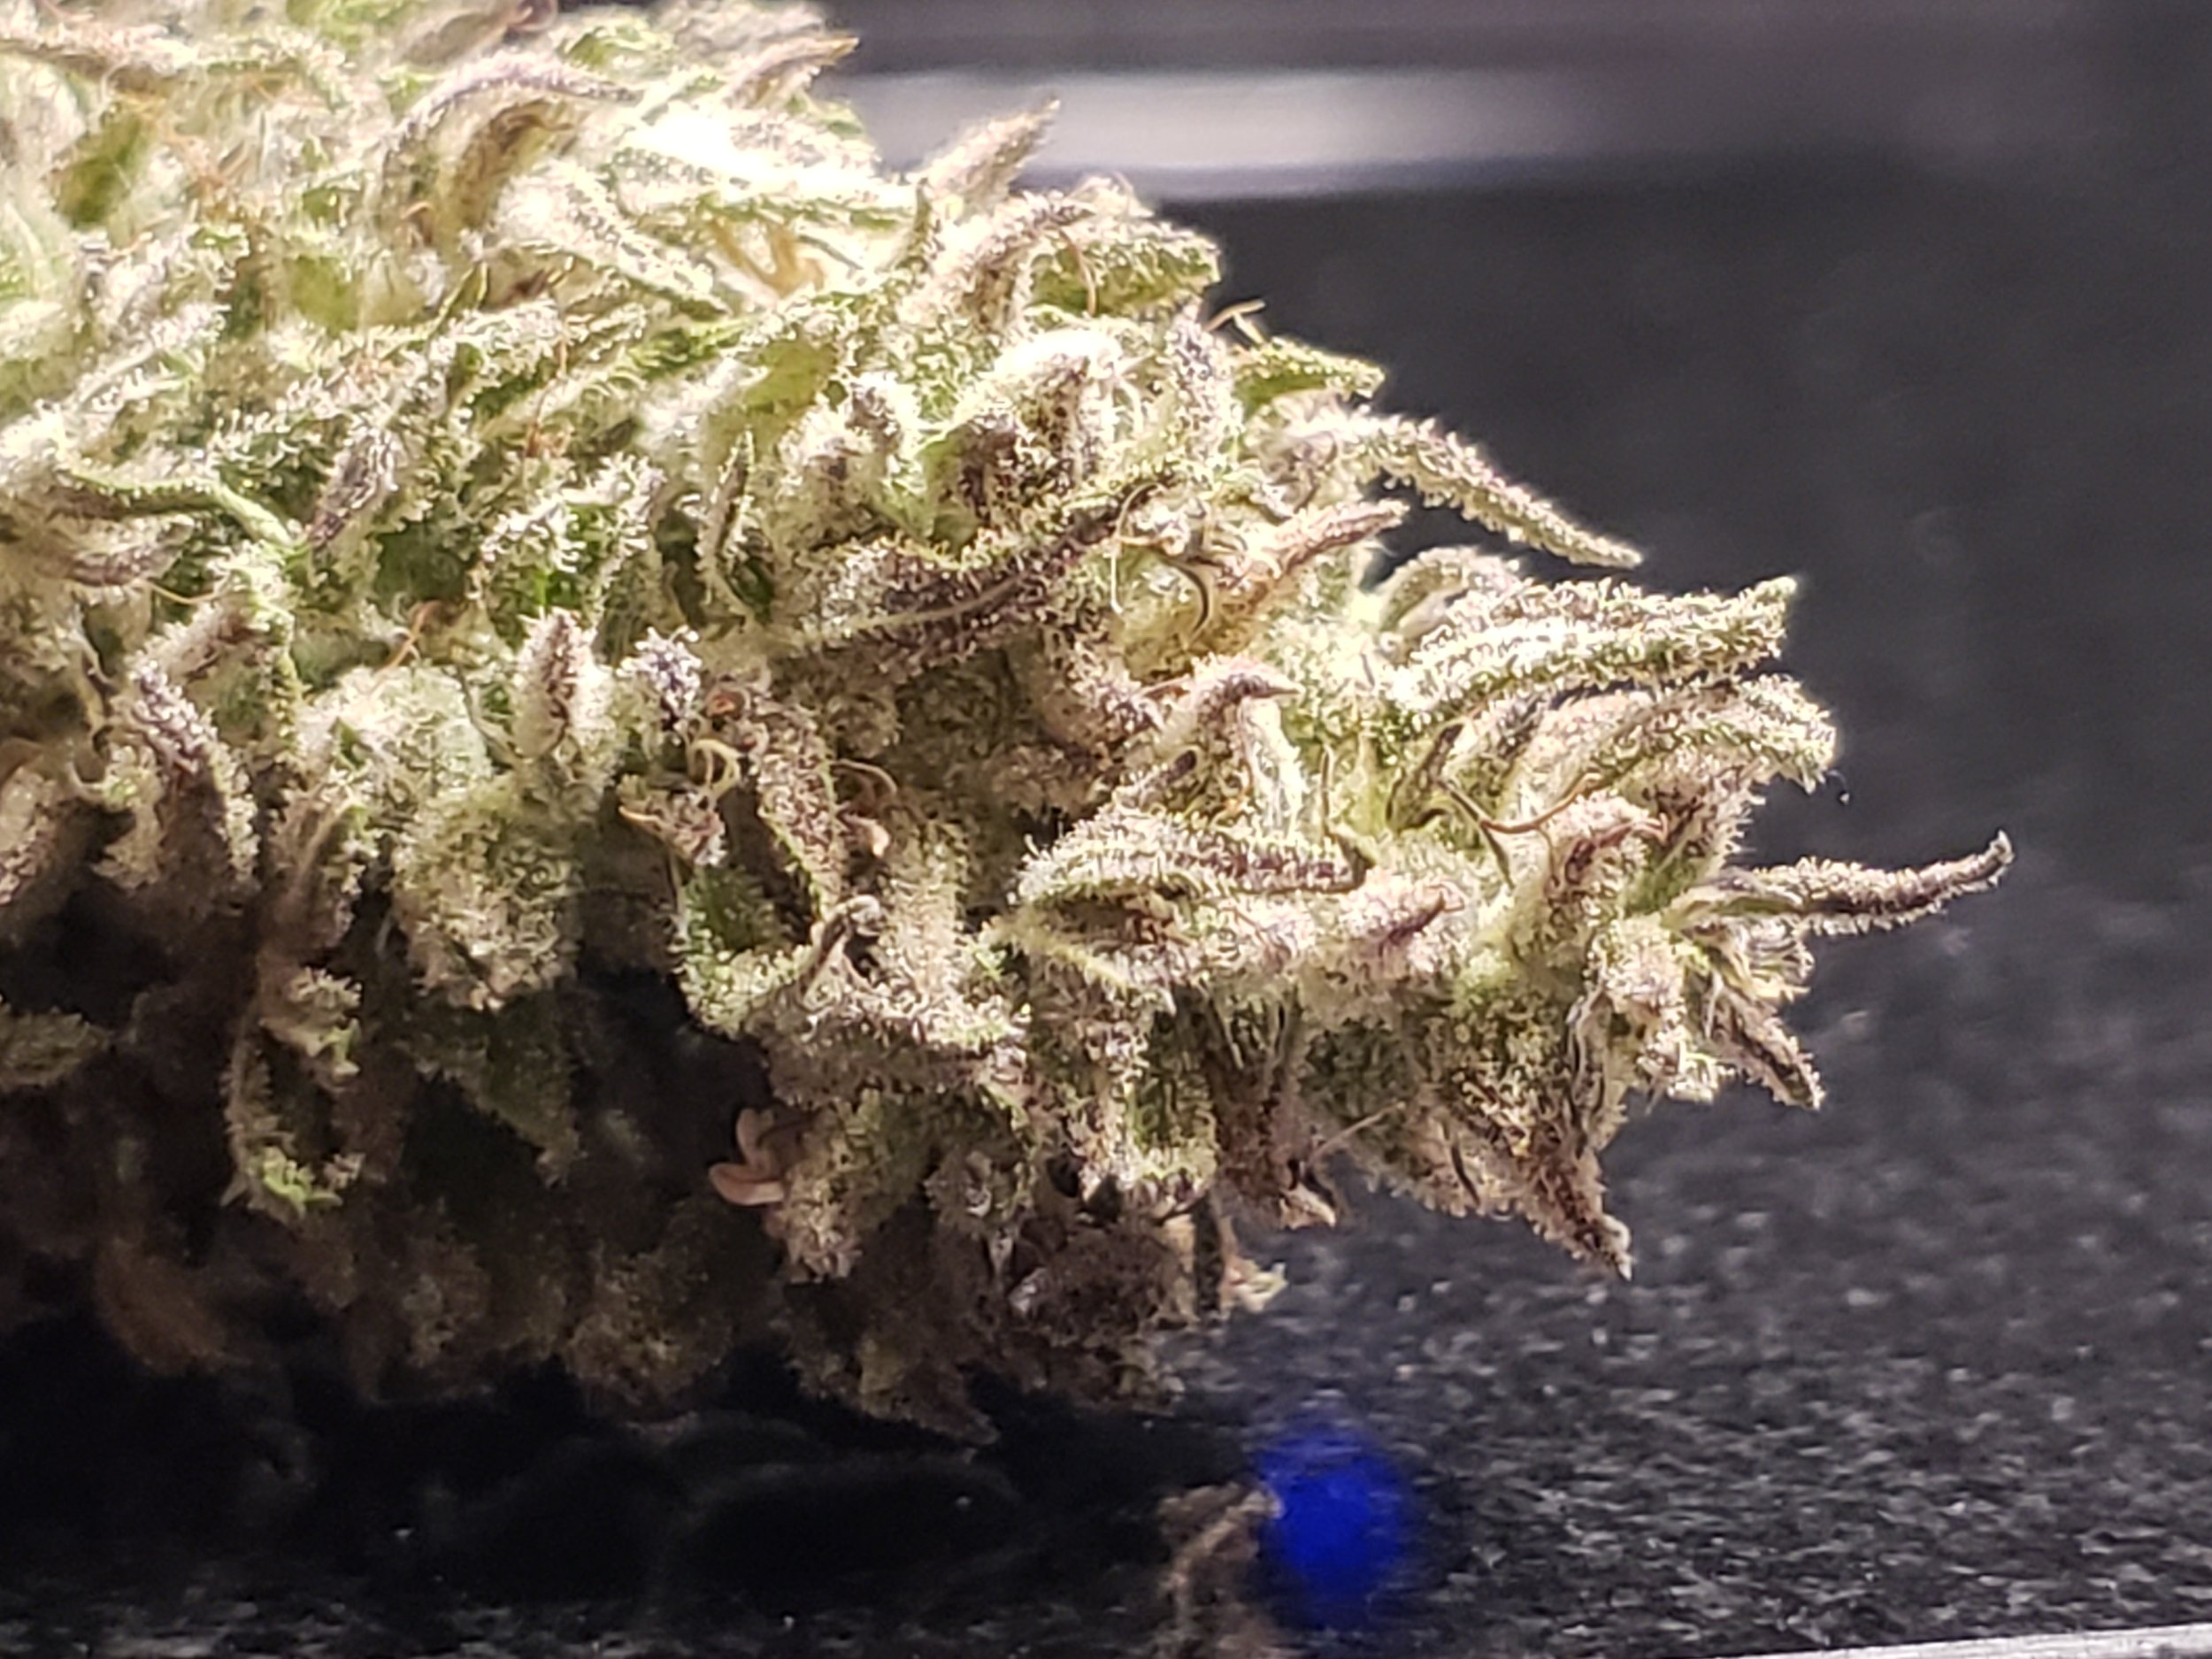 This sample was grown outdoors without irrigation around a mile of elevation. Indoor plants exhibited similar traits, but the outdoor plants were favorable and more complete in terpene and resin content.